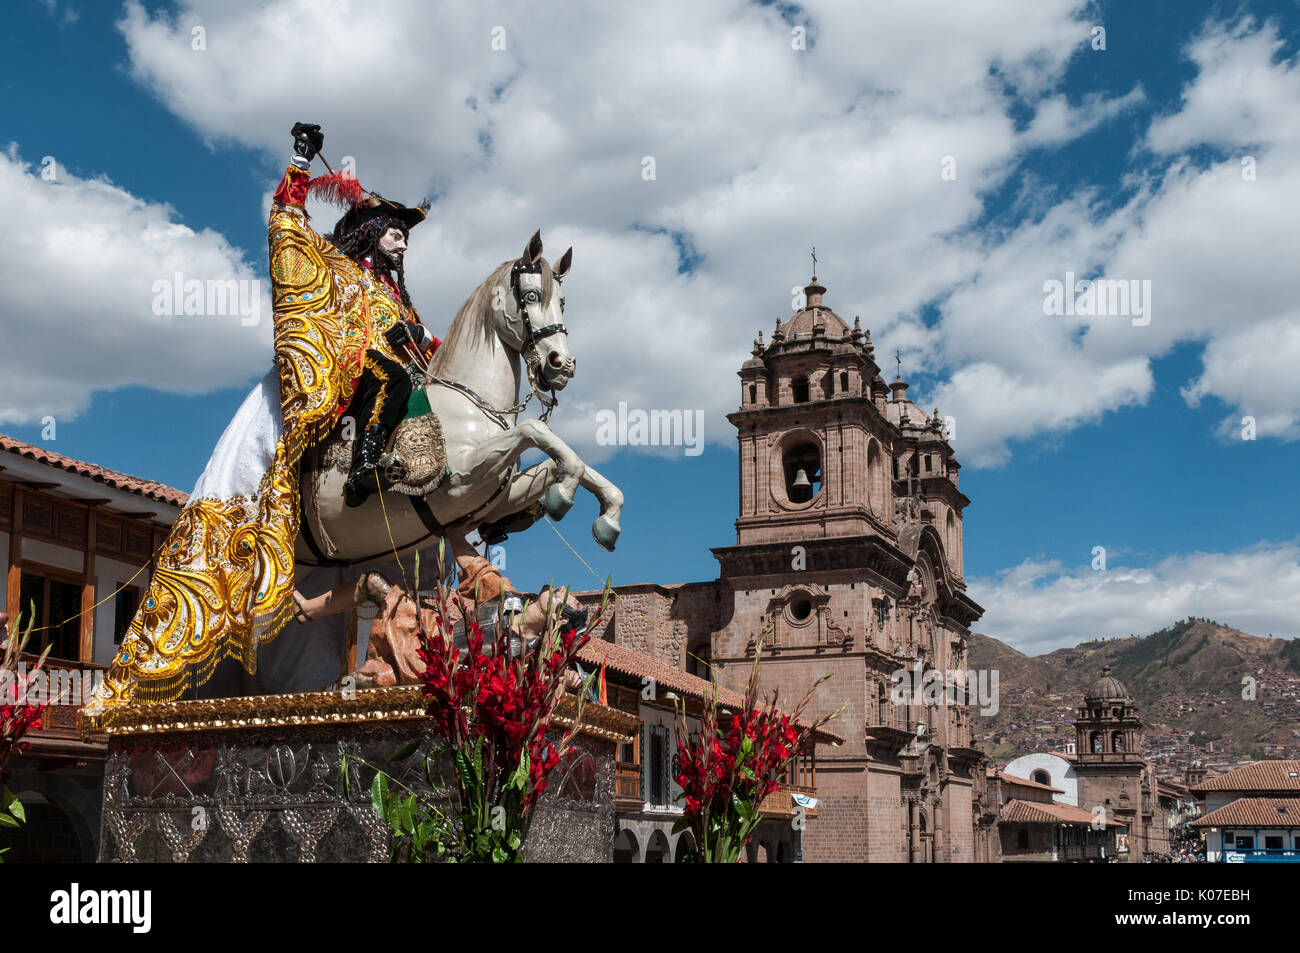 A statue of Saint James with Church of la Compania de Jesus in the background during Corpus Christi celebrations Stock Photo